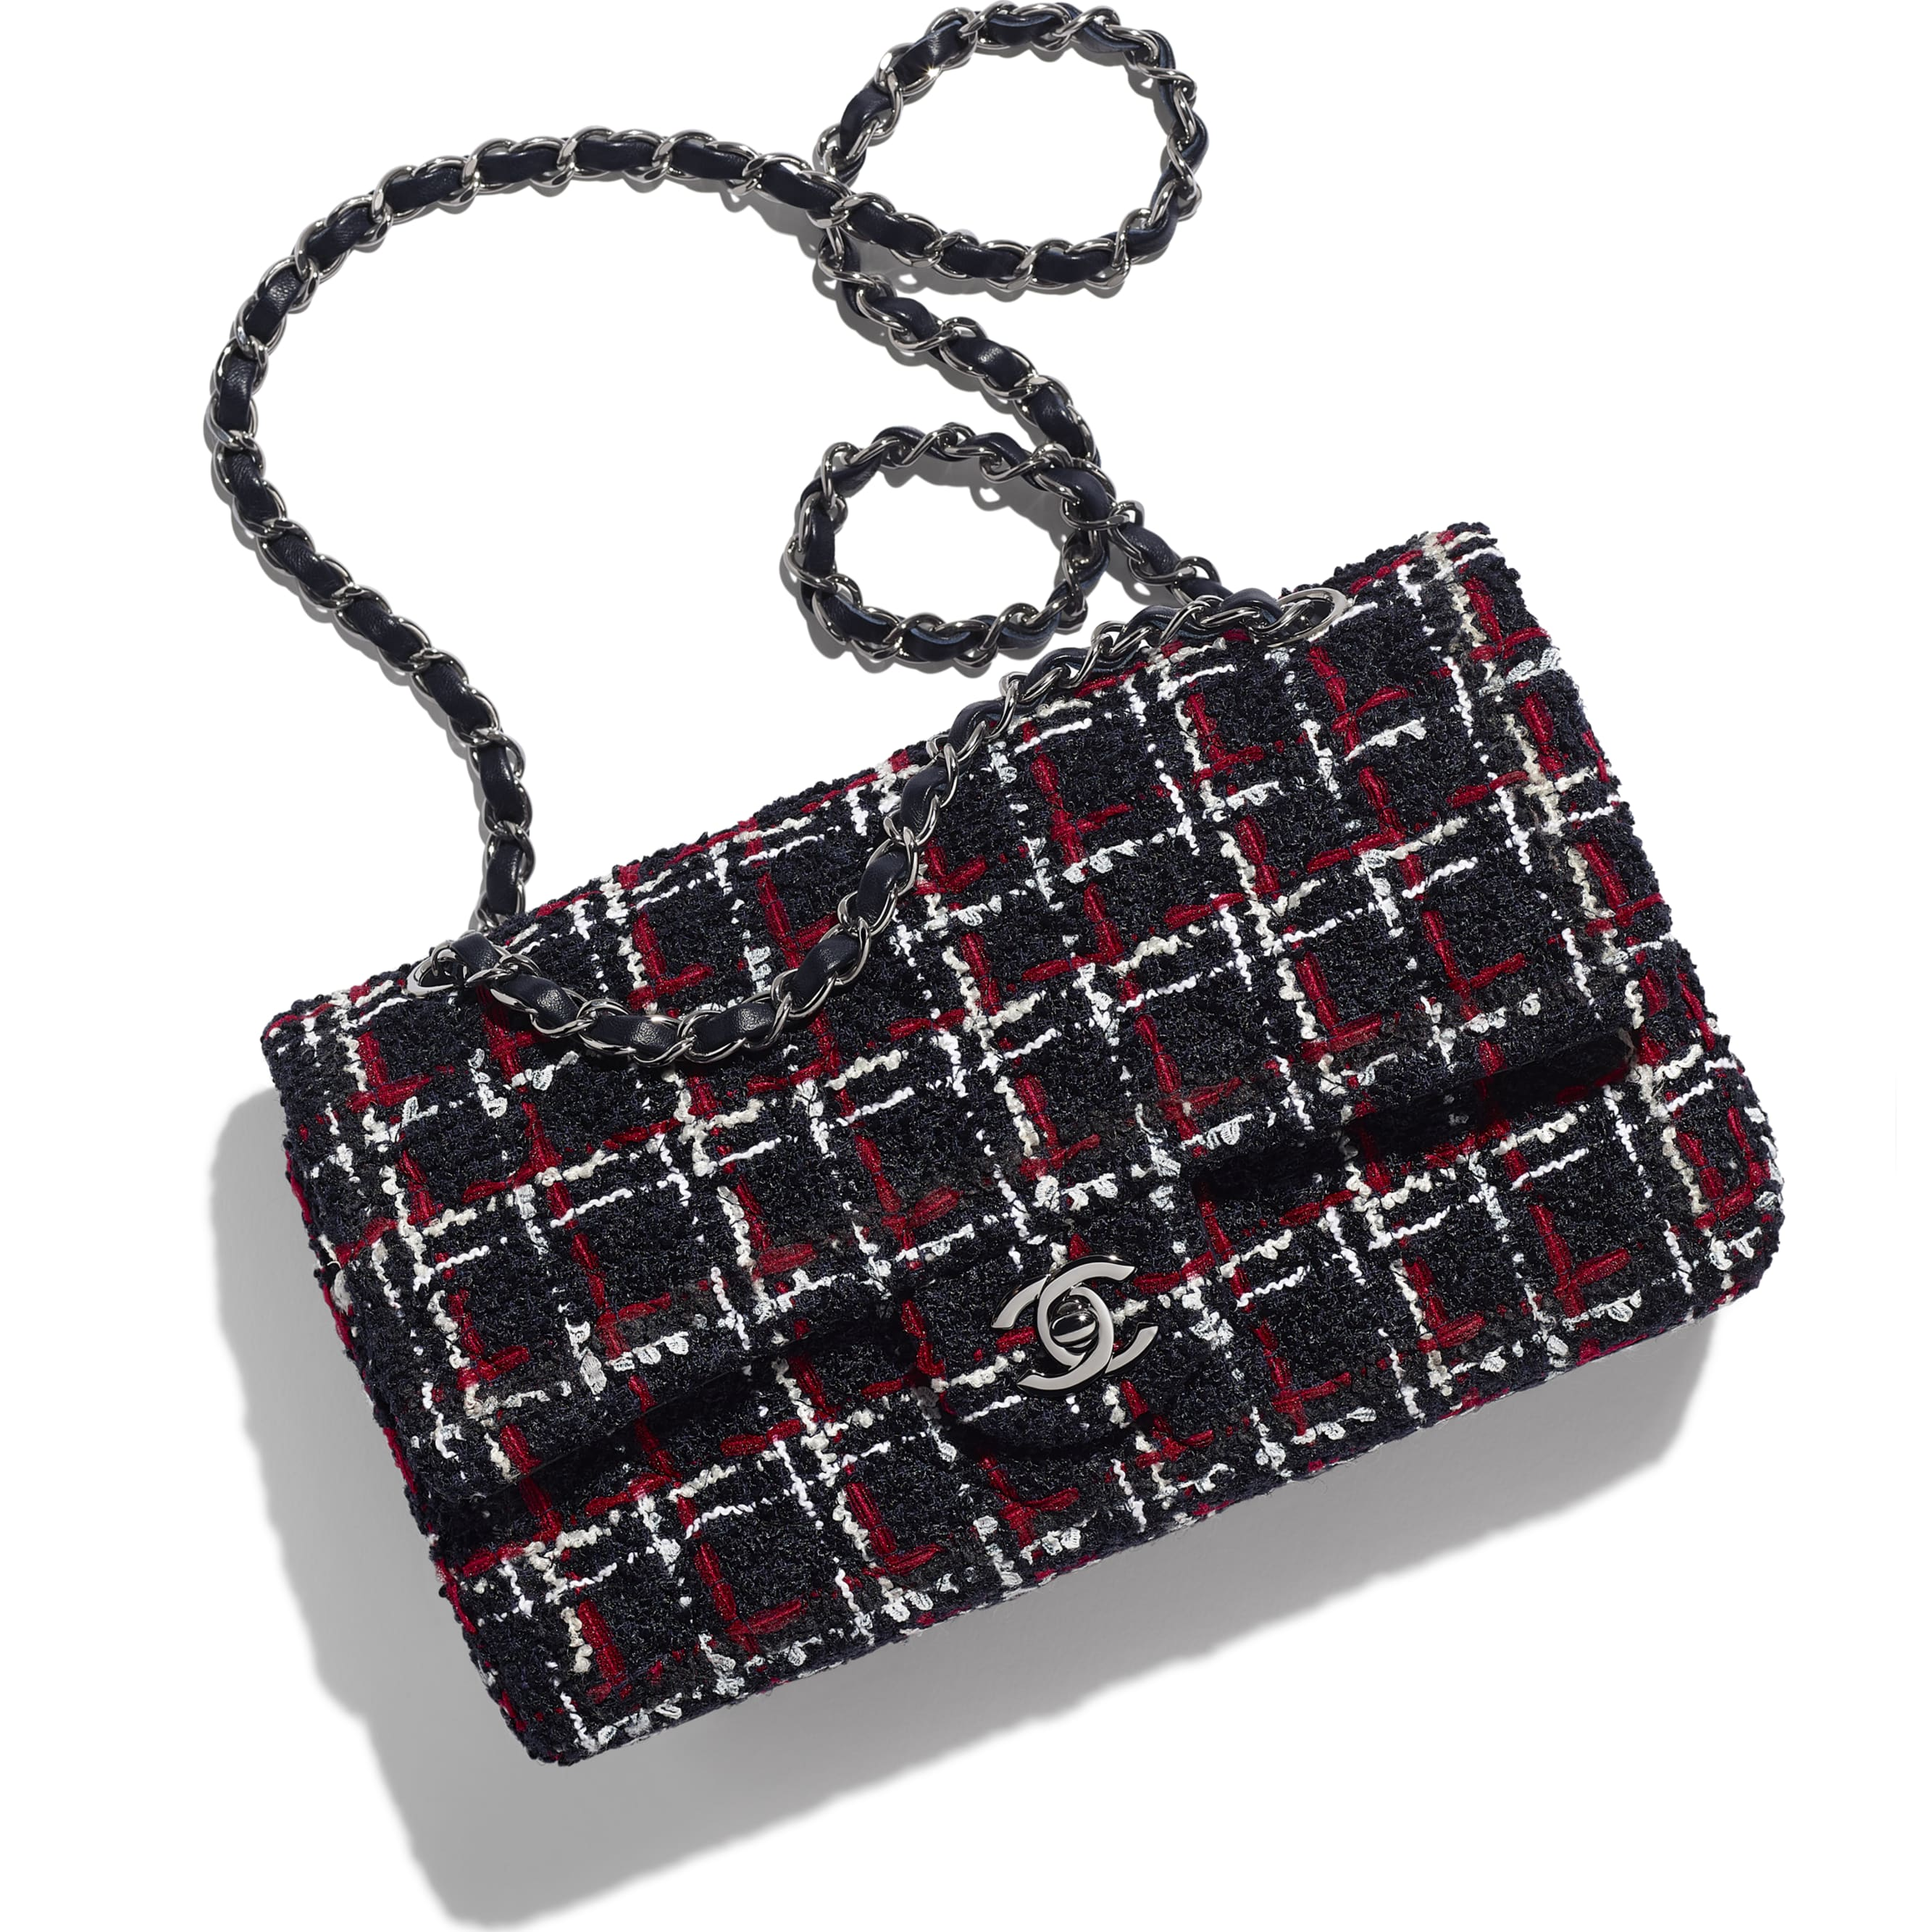 Classic Handbag - Navy Blue, White & Red - Tweed & Ruthenium-Finish Metal - CHANEL - Extra view - see standard sized version